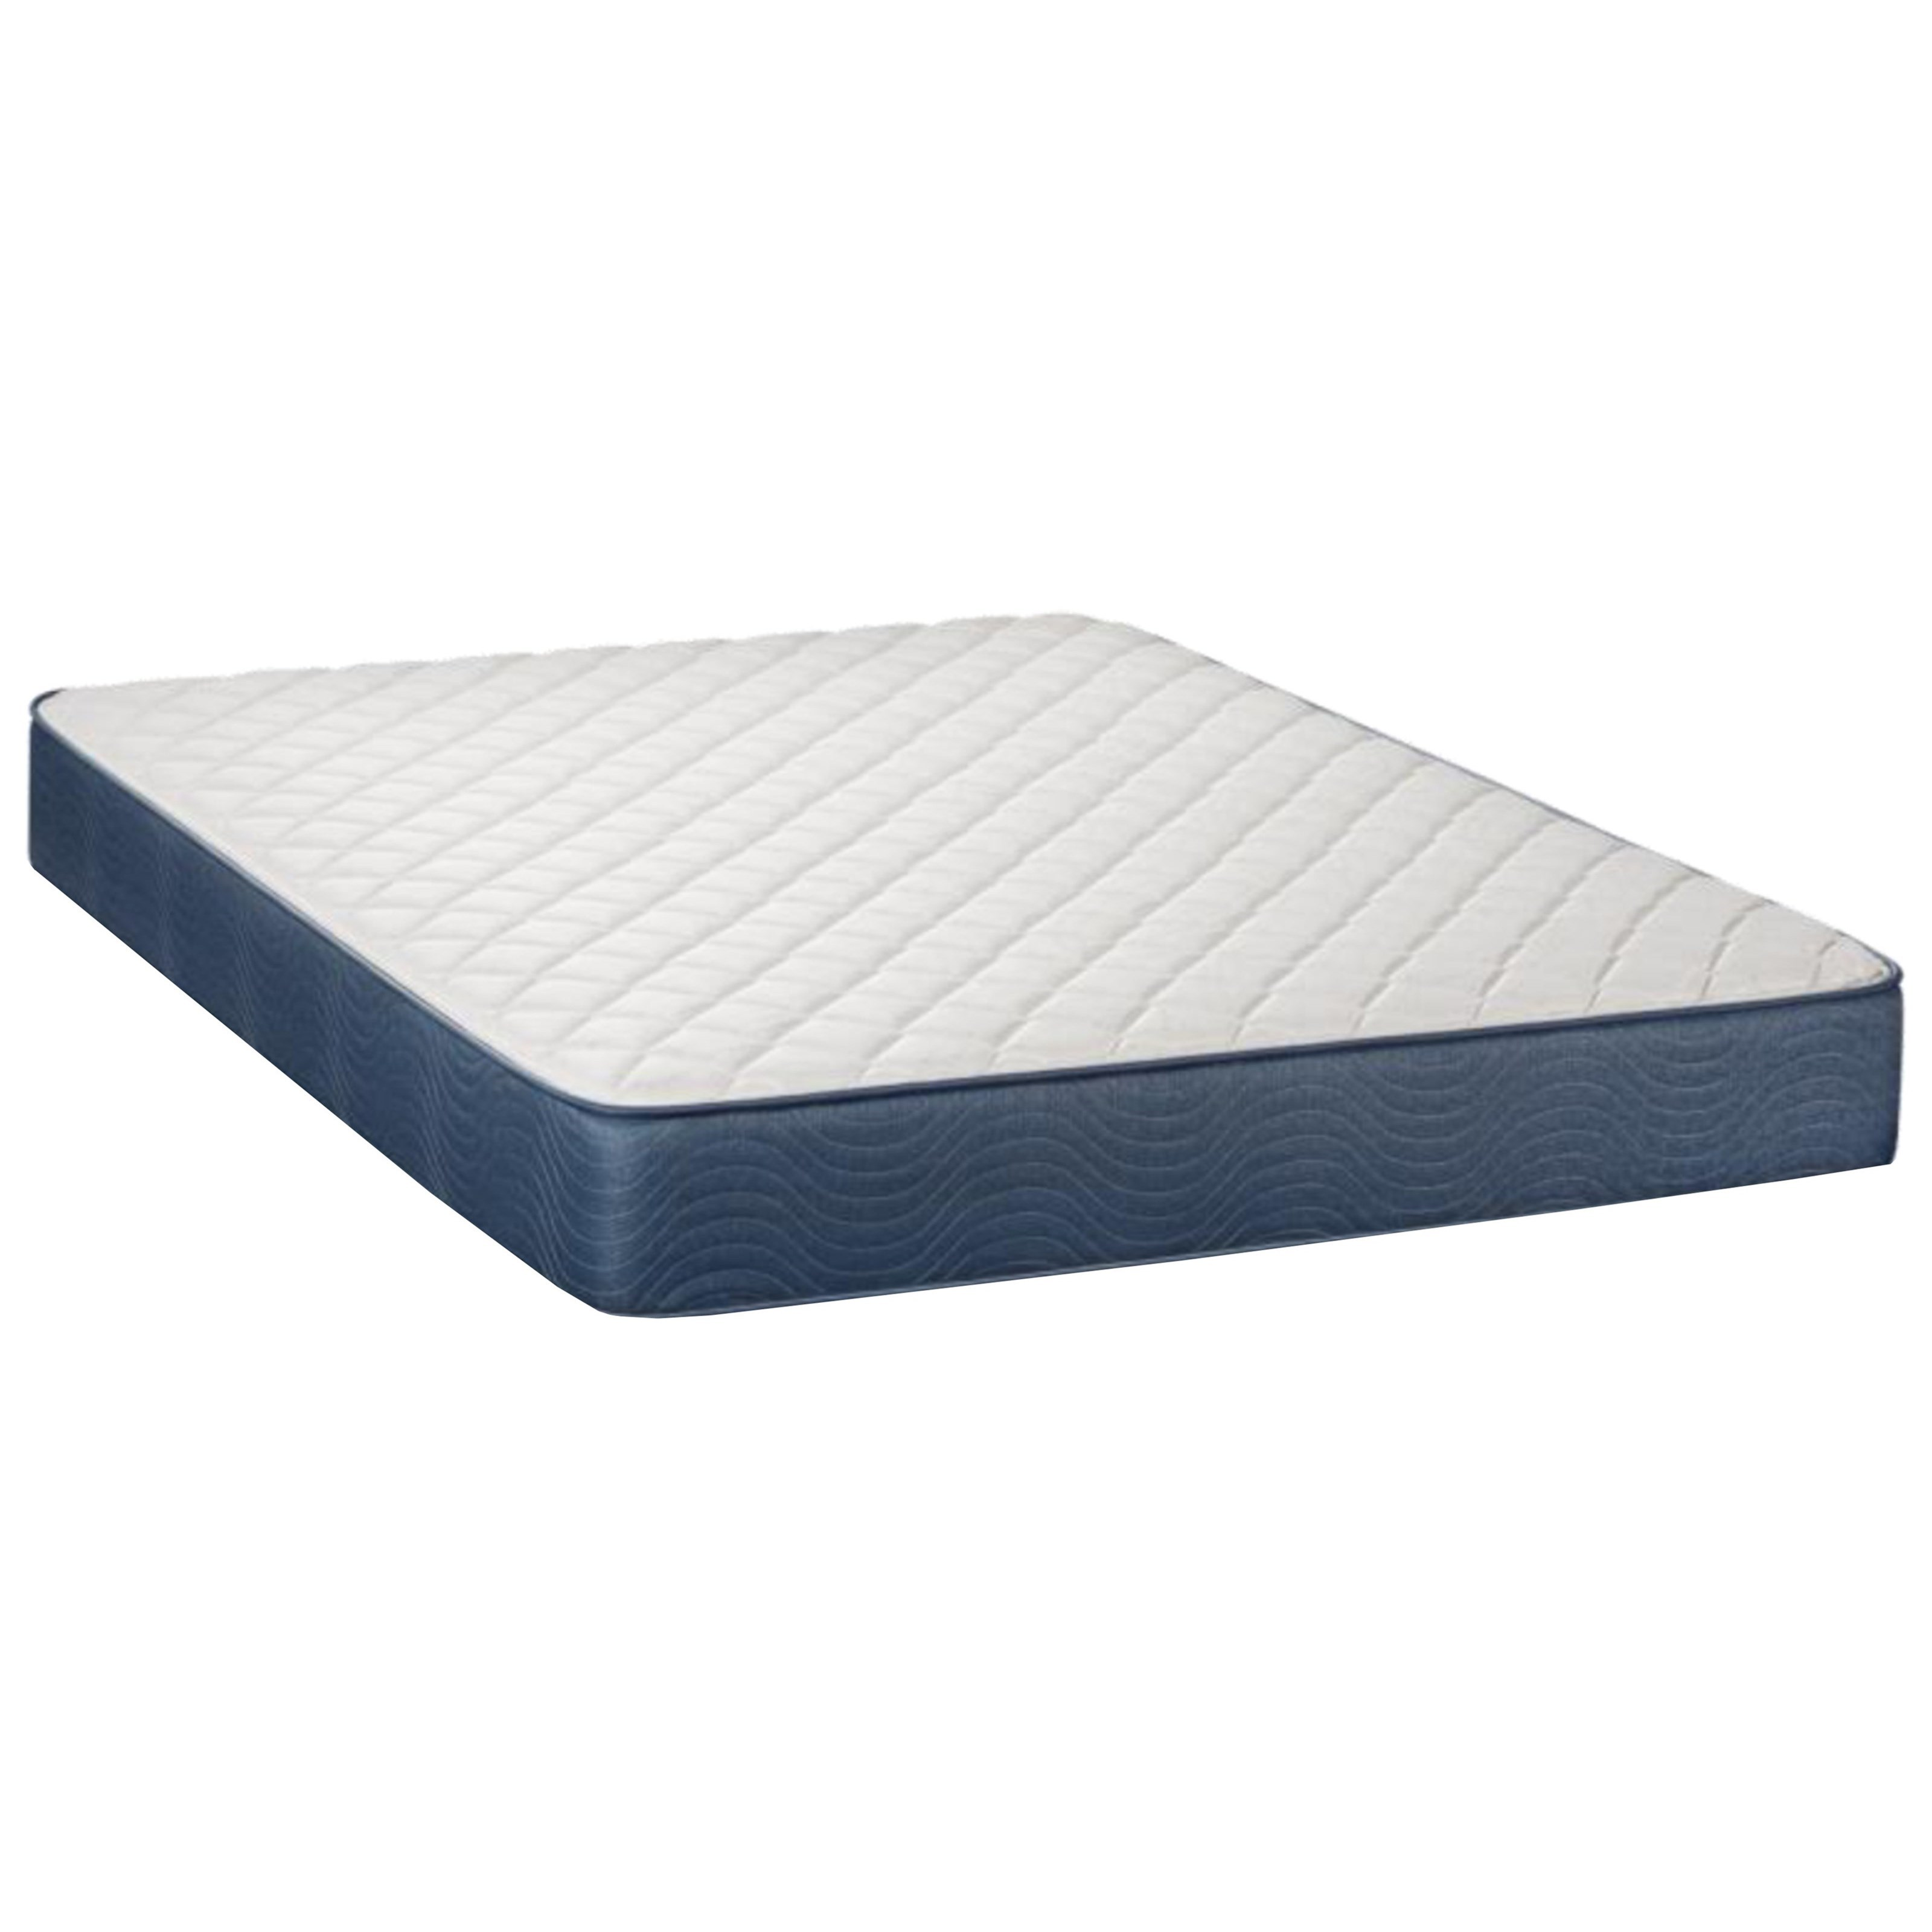 """Sumner Firm Full 9"""" Firm Two Sided Mattress by Restonic at Hudson's Furniture"""